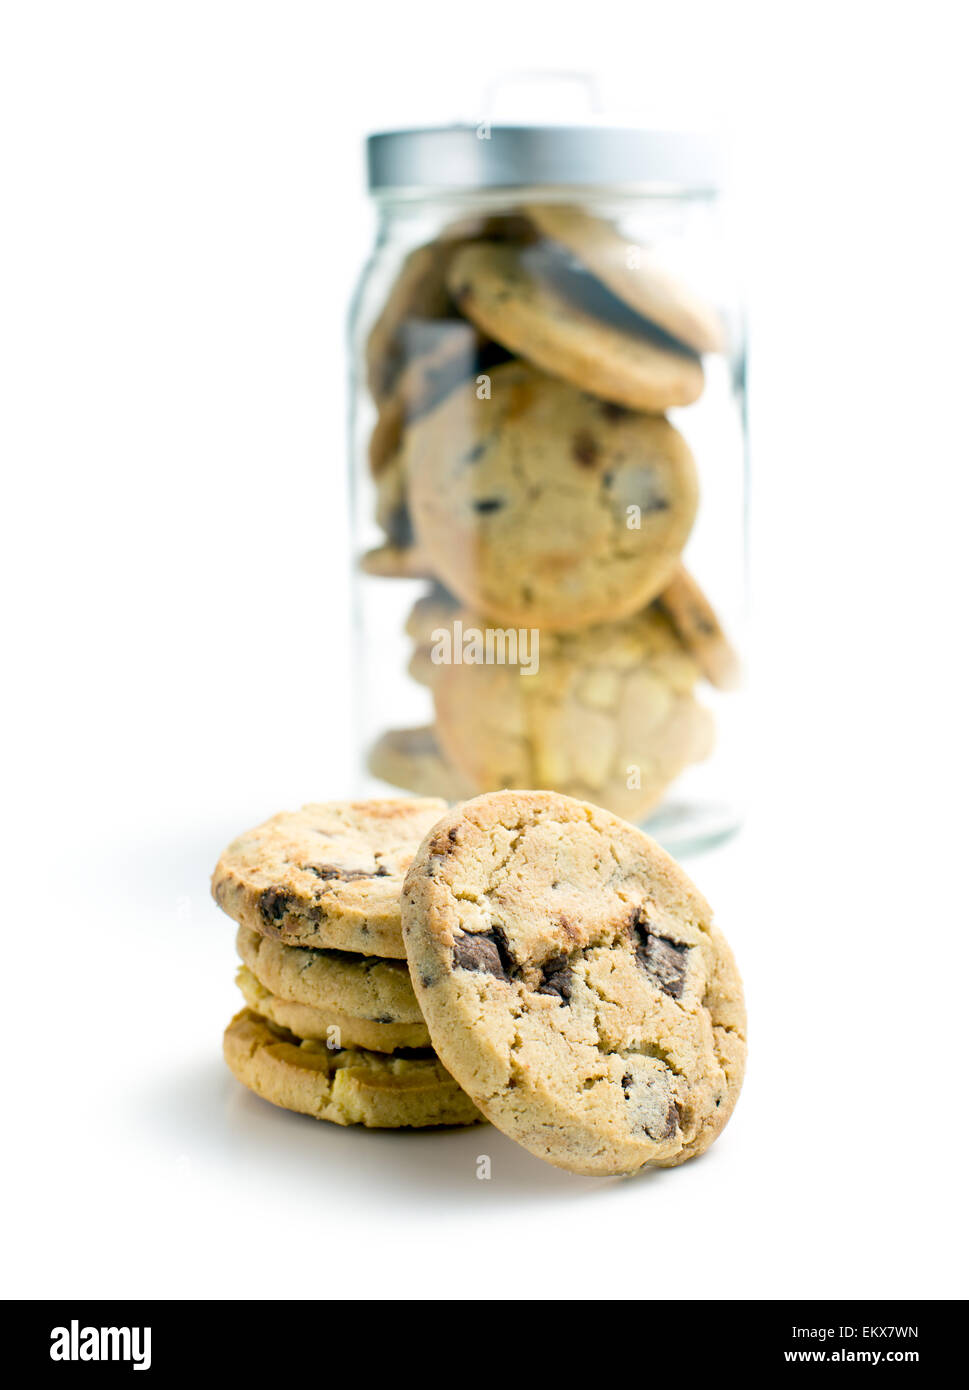 the pile of chocolate cookies - Stock Image